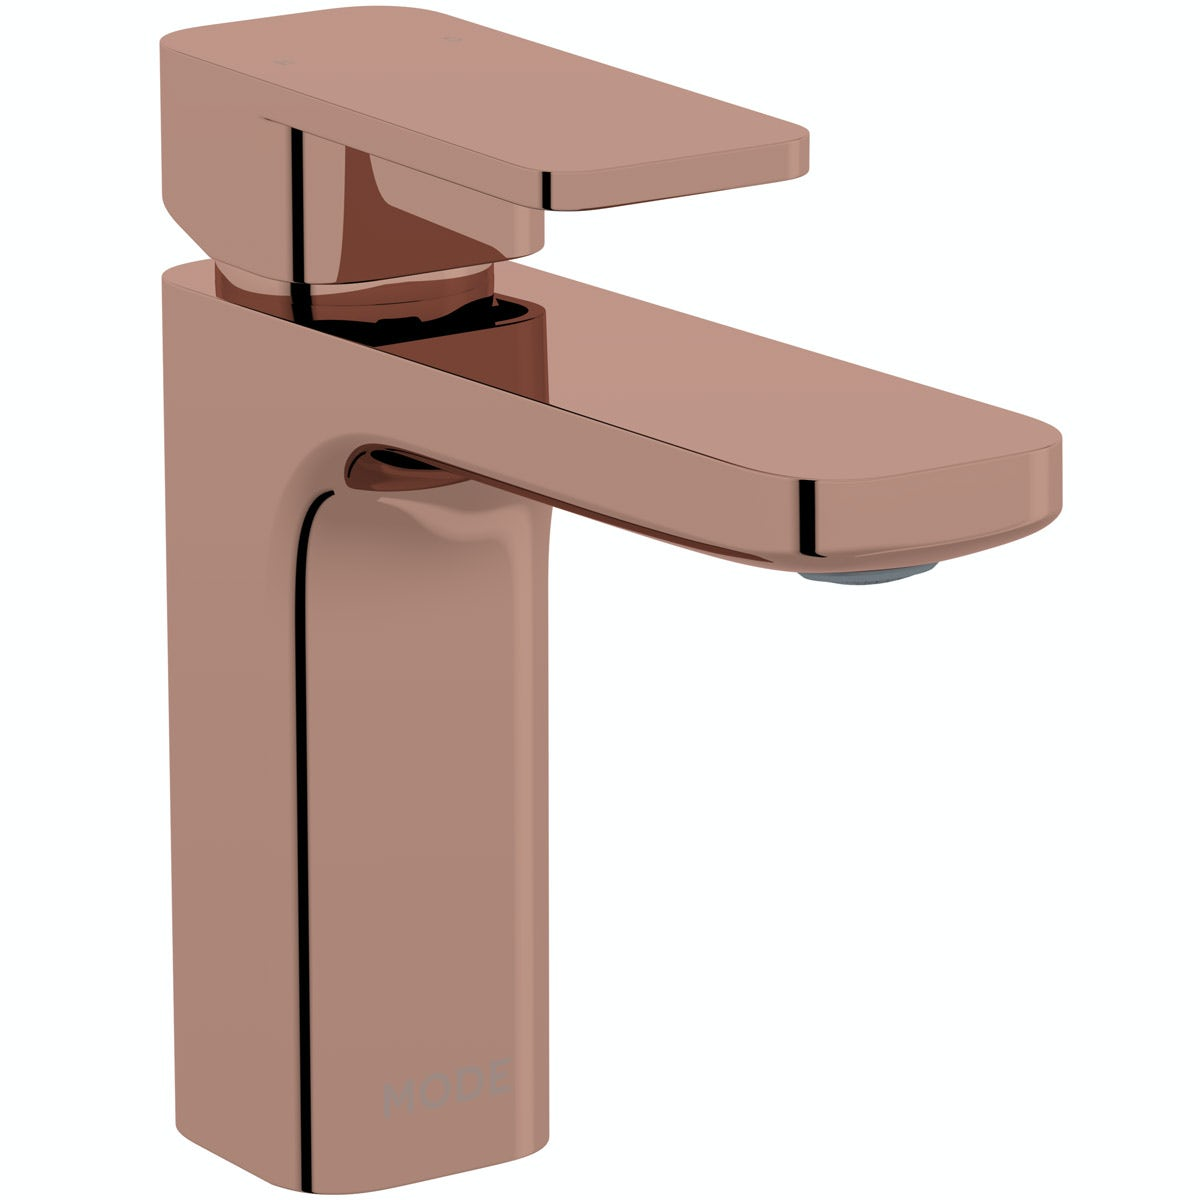 Mode Spencer square rose gold basin mixer tap